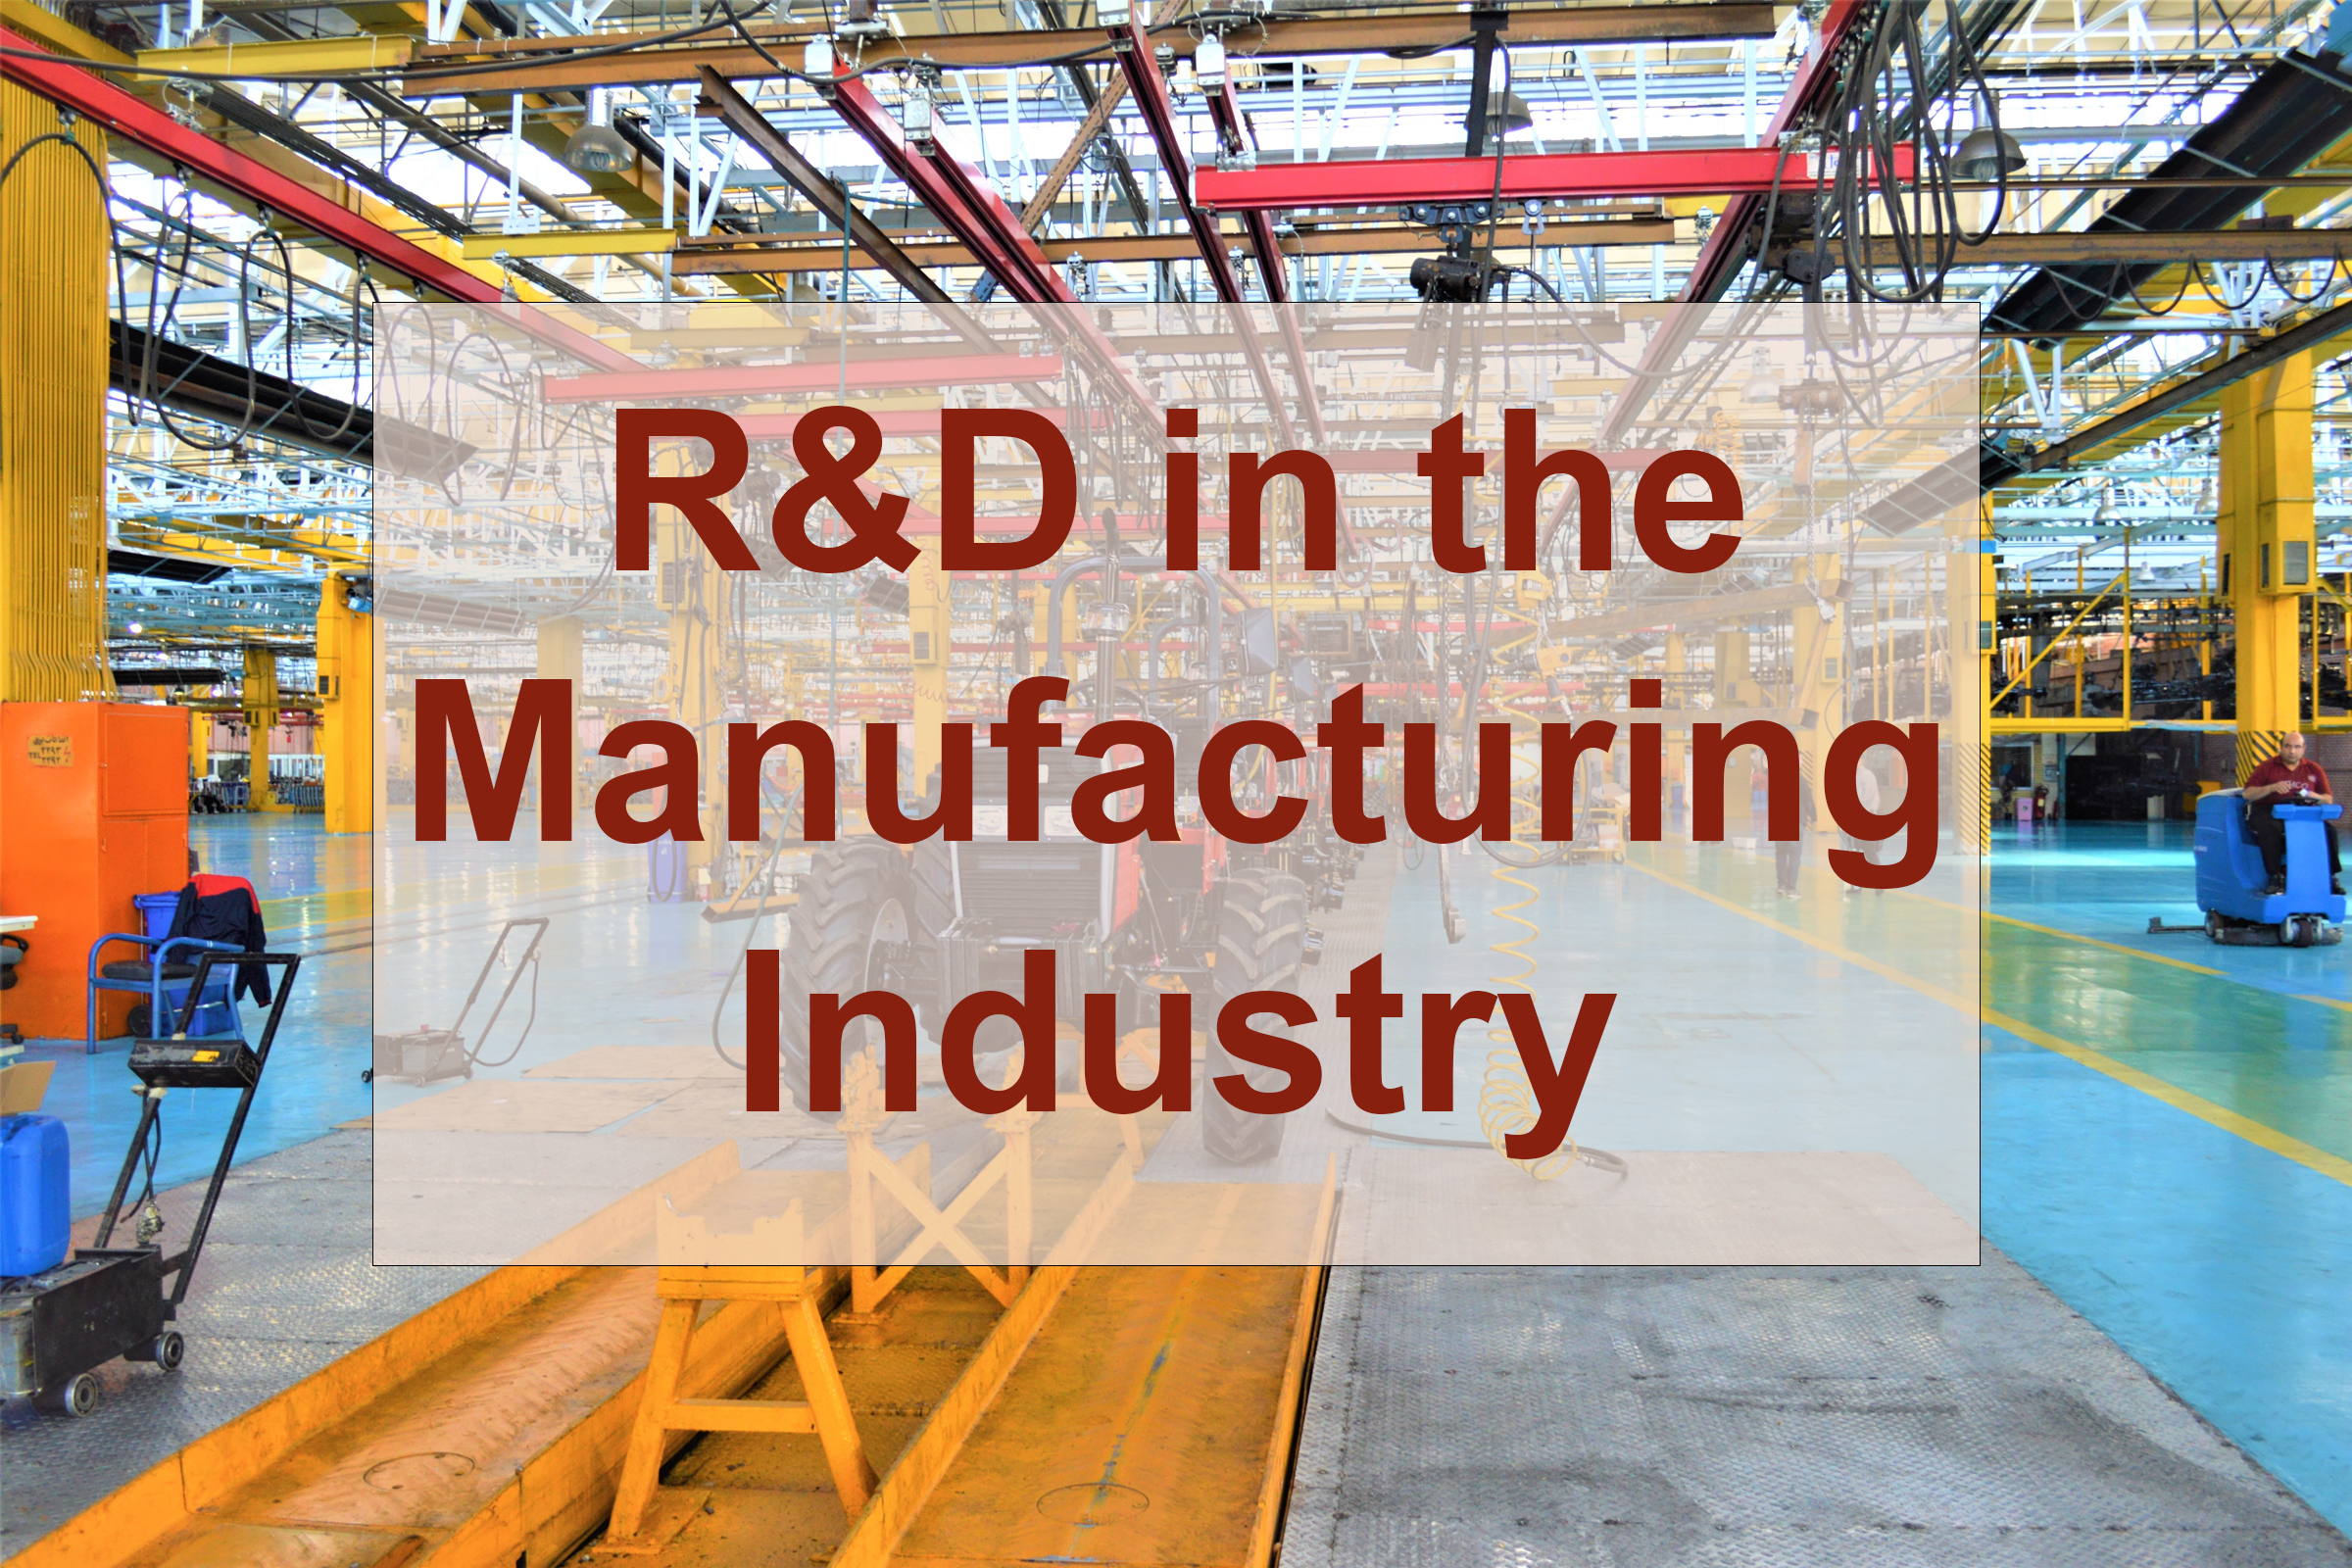 R&D in the Manufacturing Industry